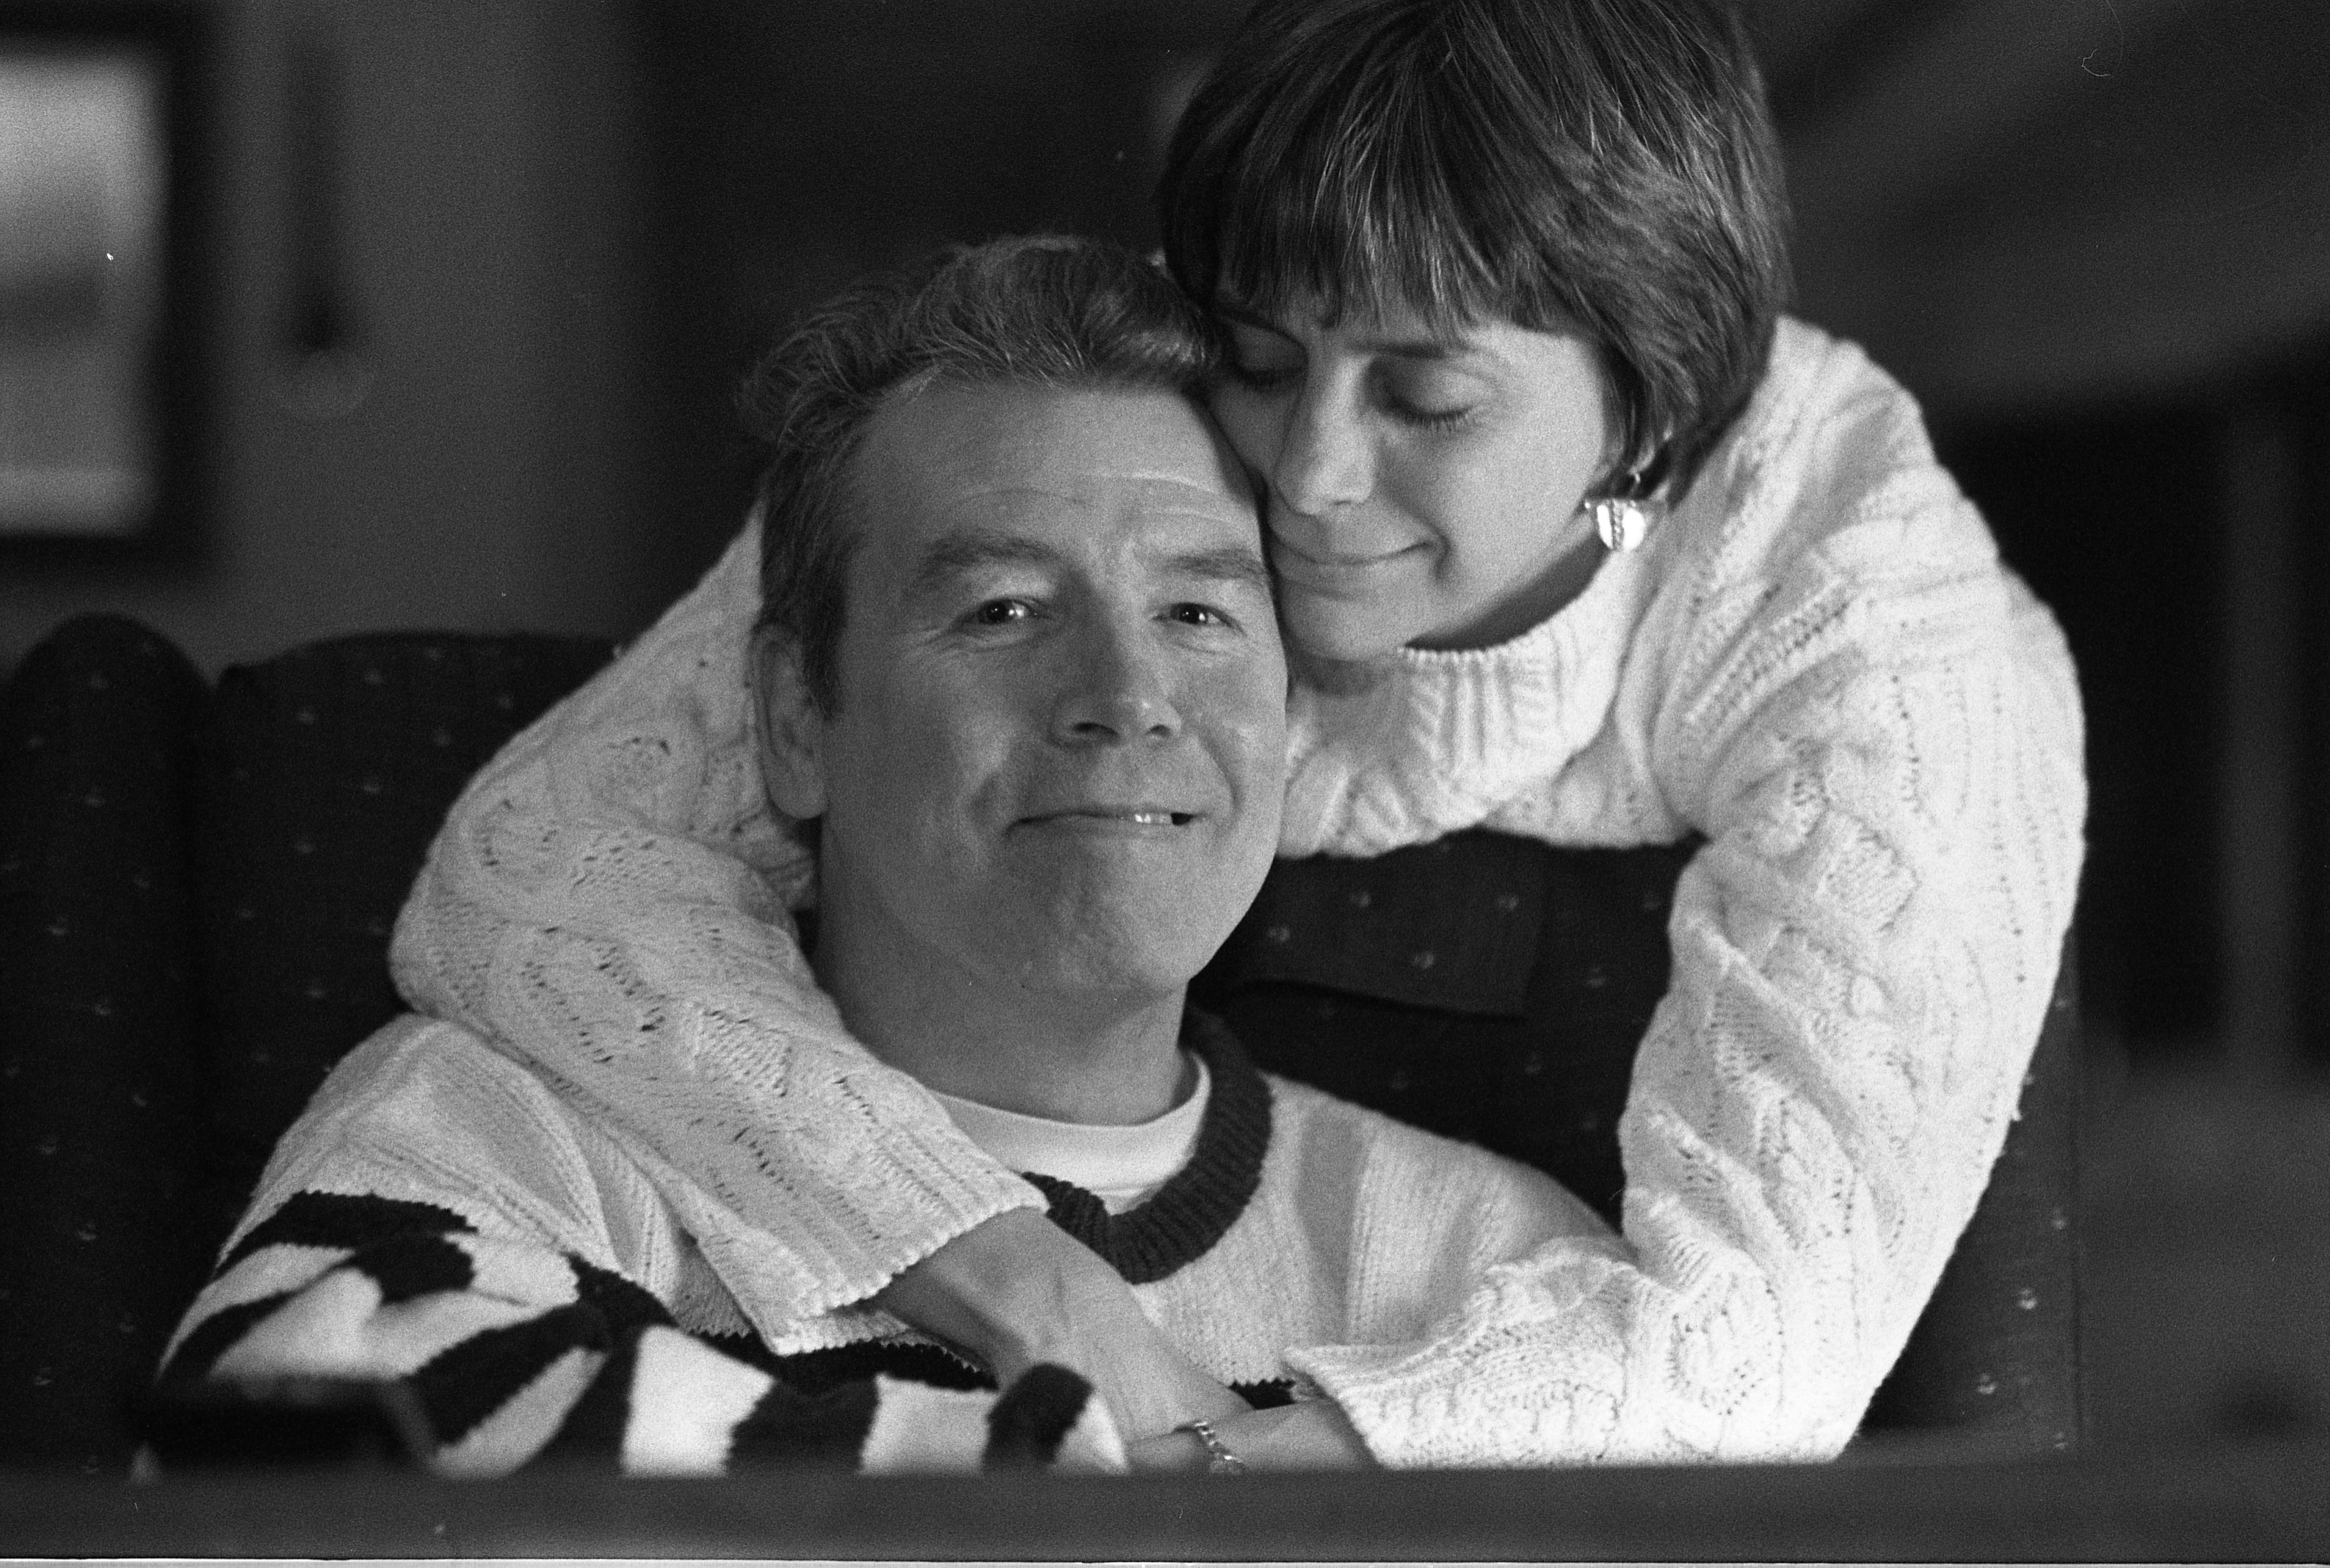 Ann Arbor Reporter, Owen Eshenroder, After Debilitating Stroke With Wife Deborah, January 29, 1995 image